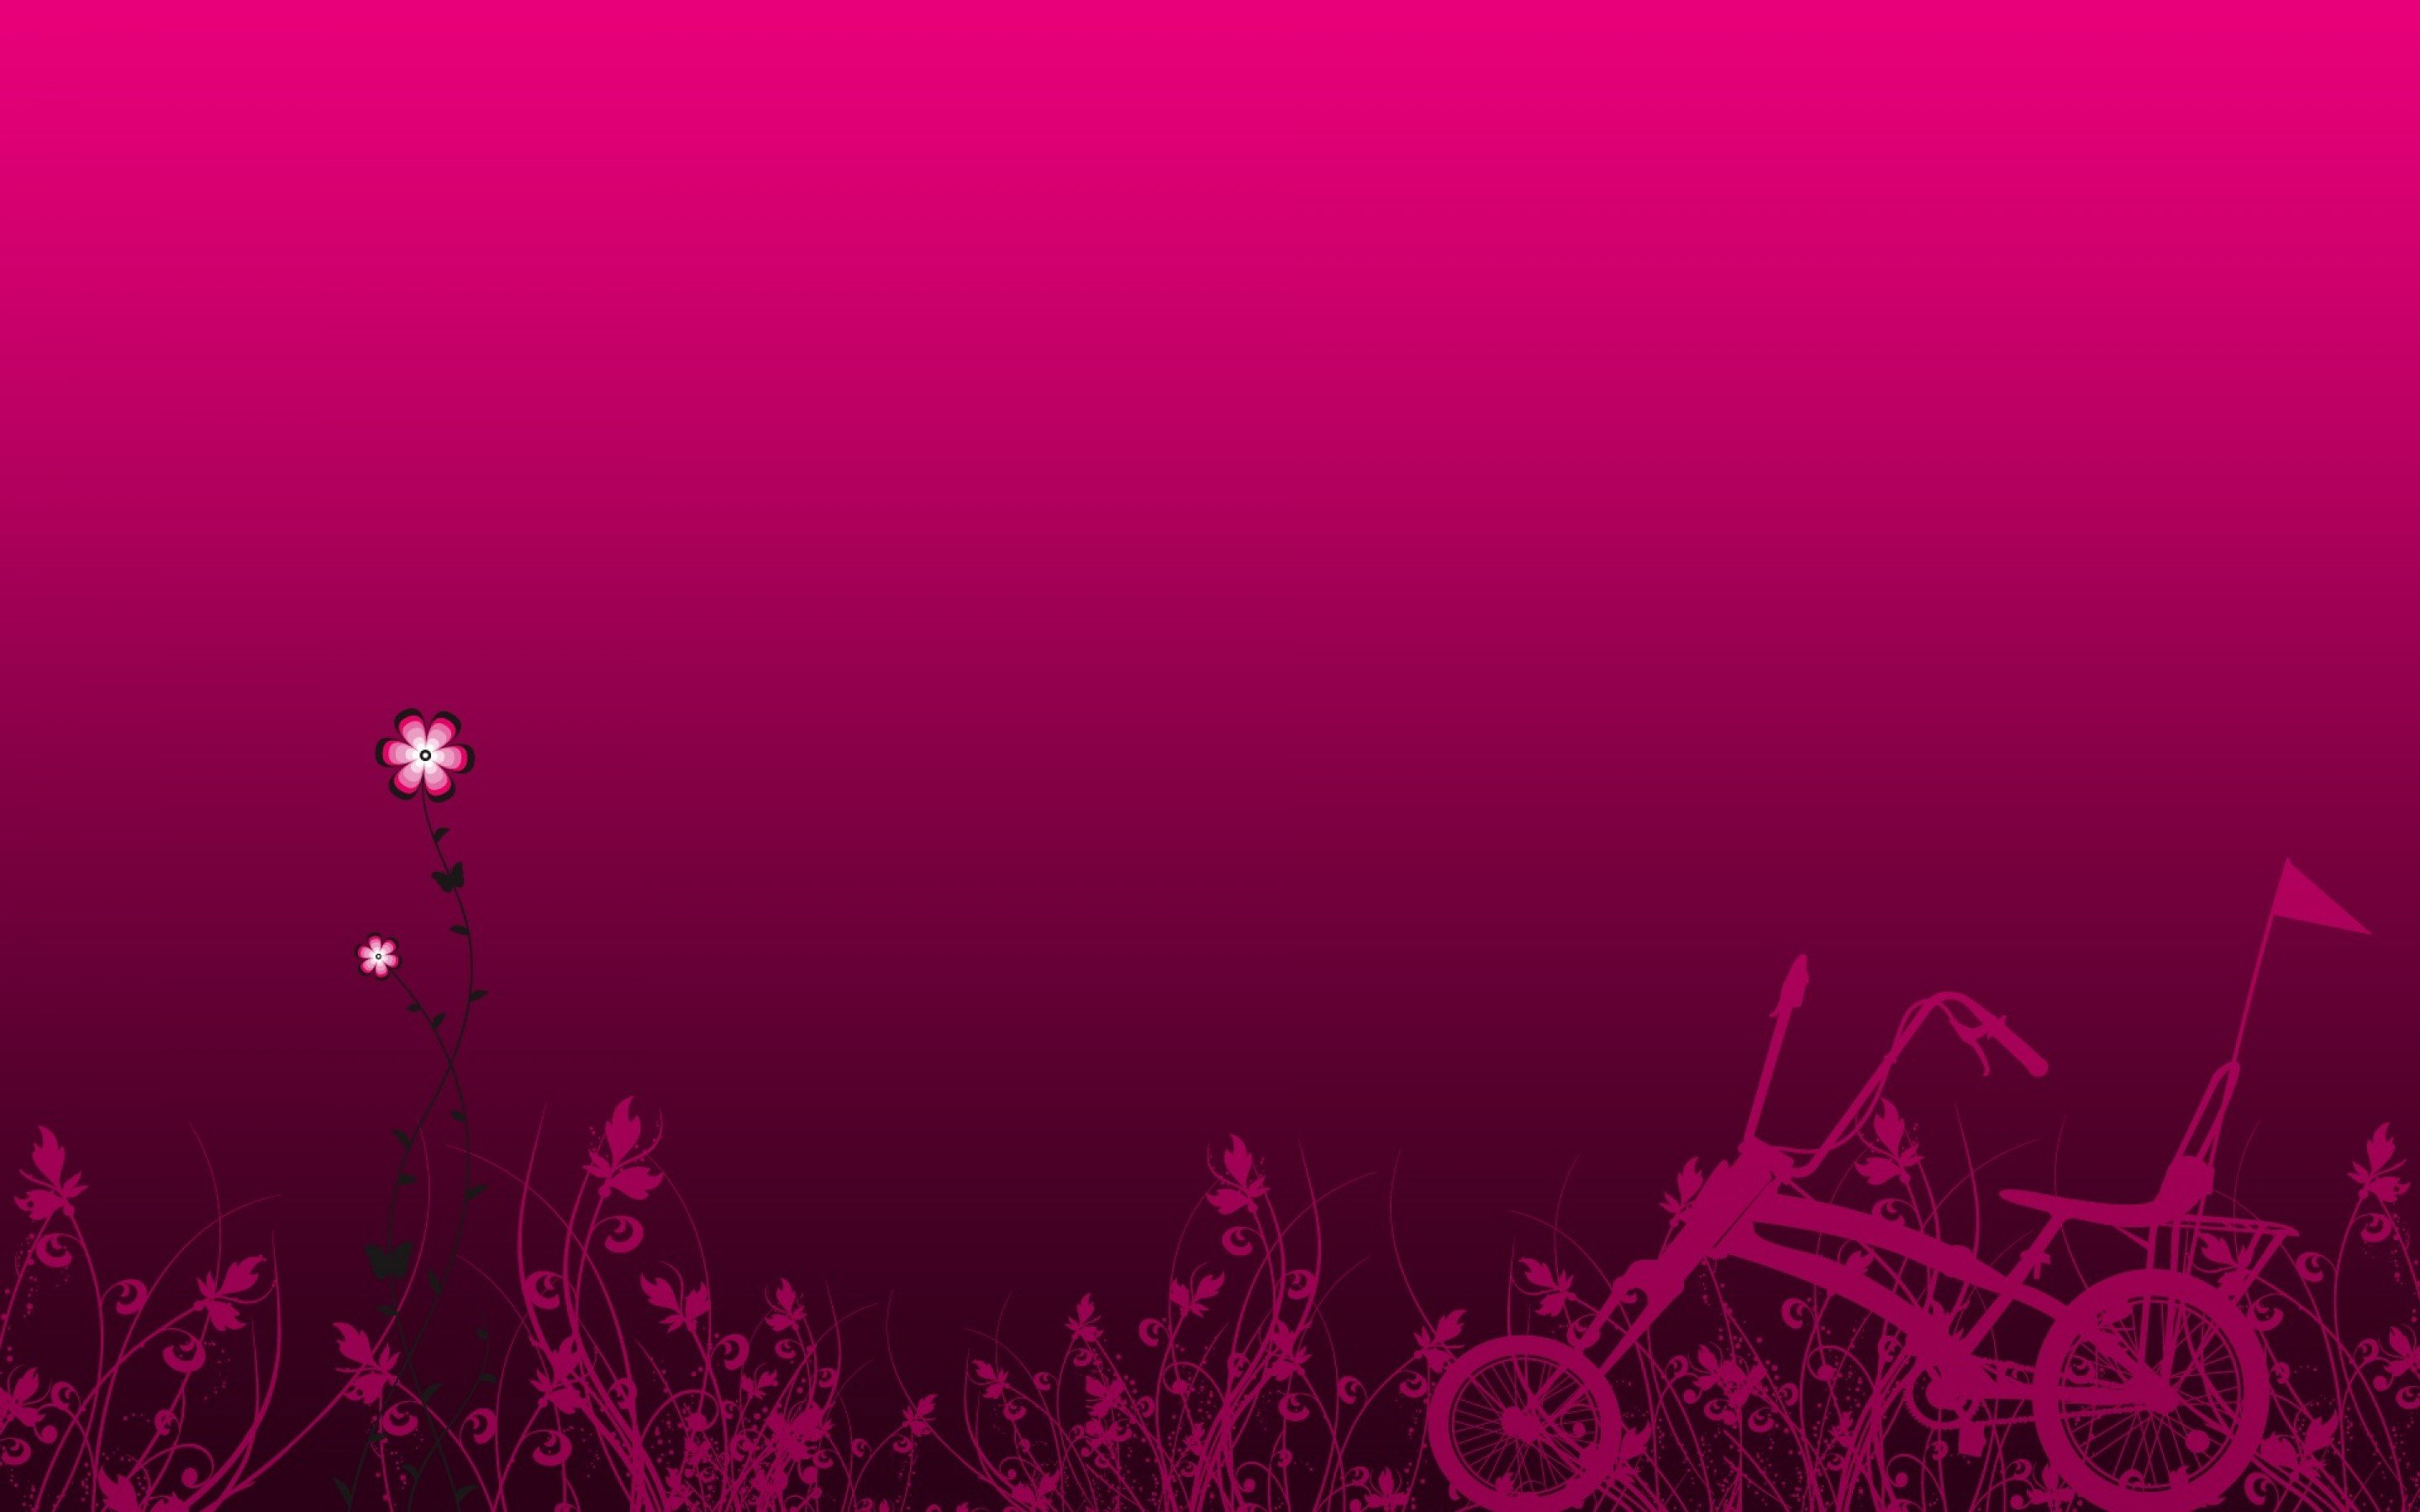 Fine 2016 Wallpapers Pack p95 Widescreen Images of Fuchsia 2880x1800